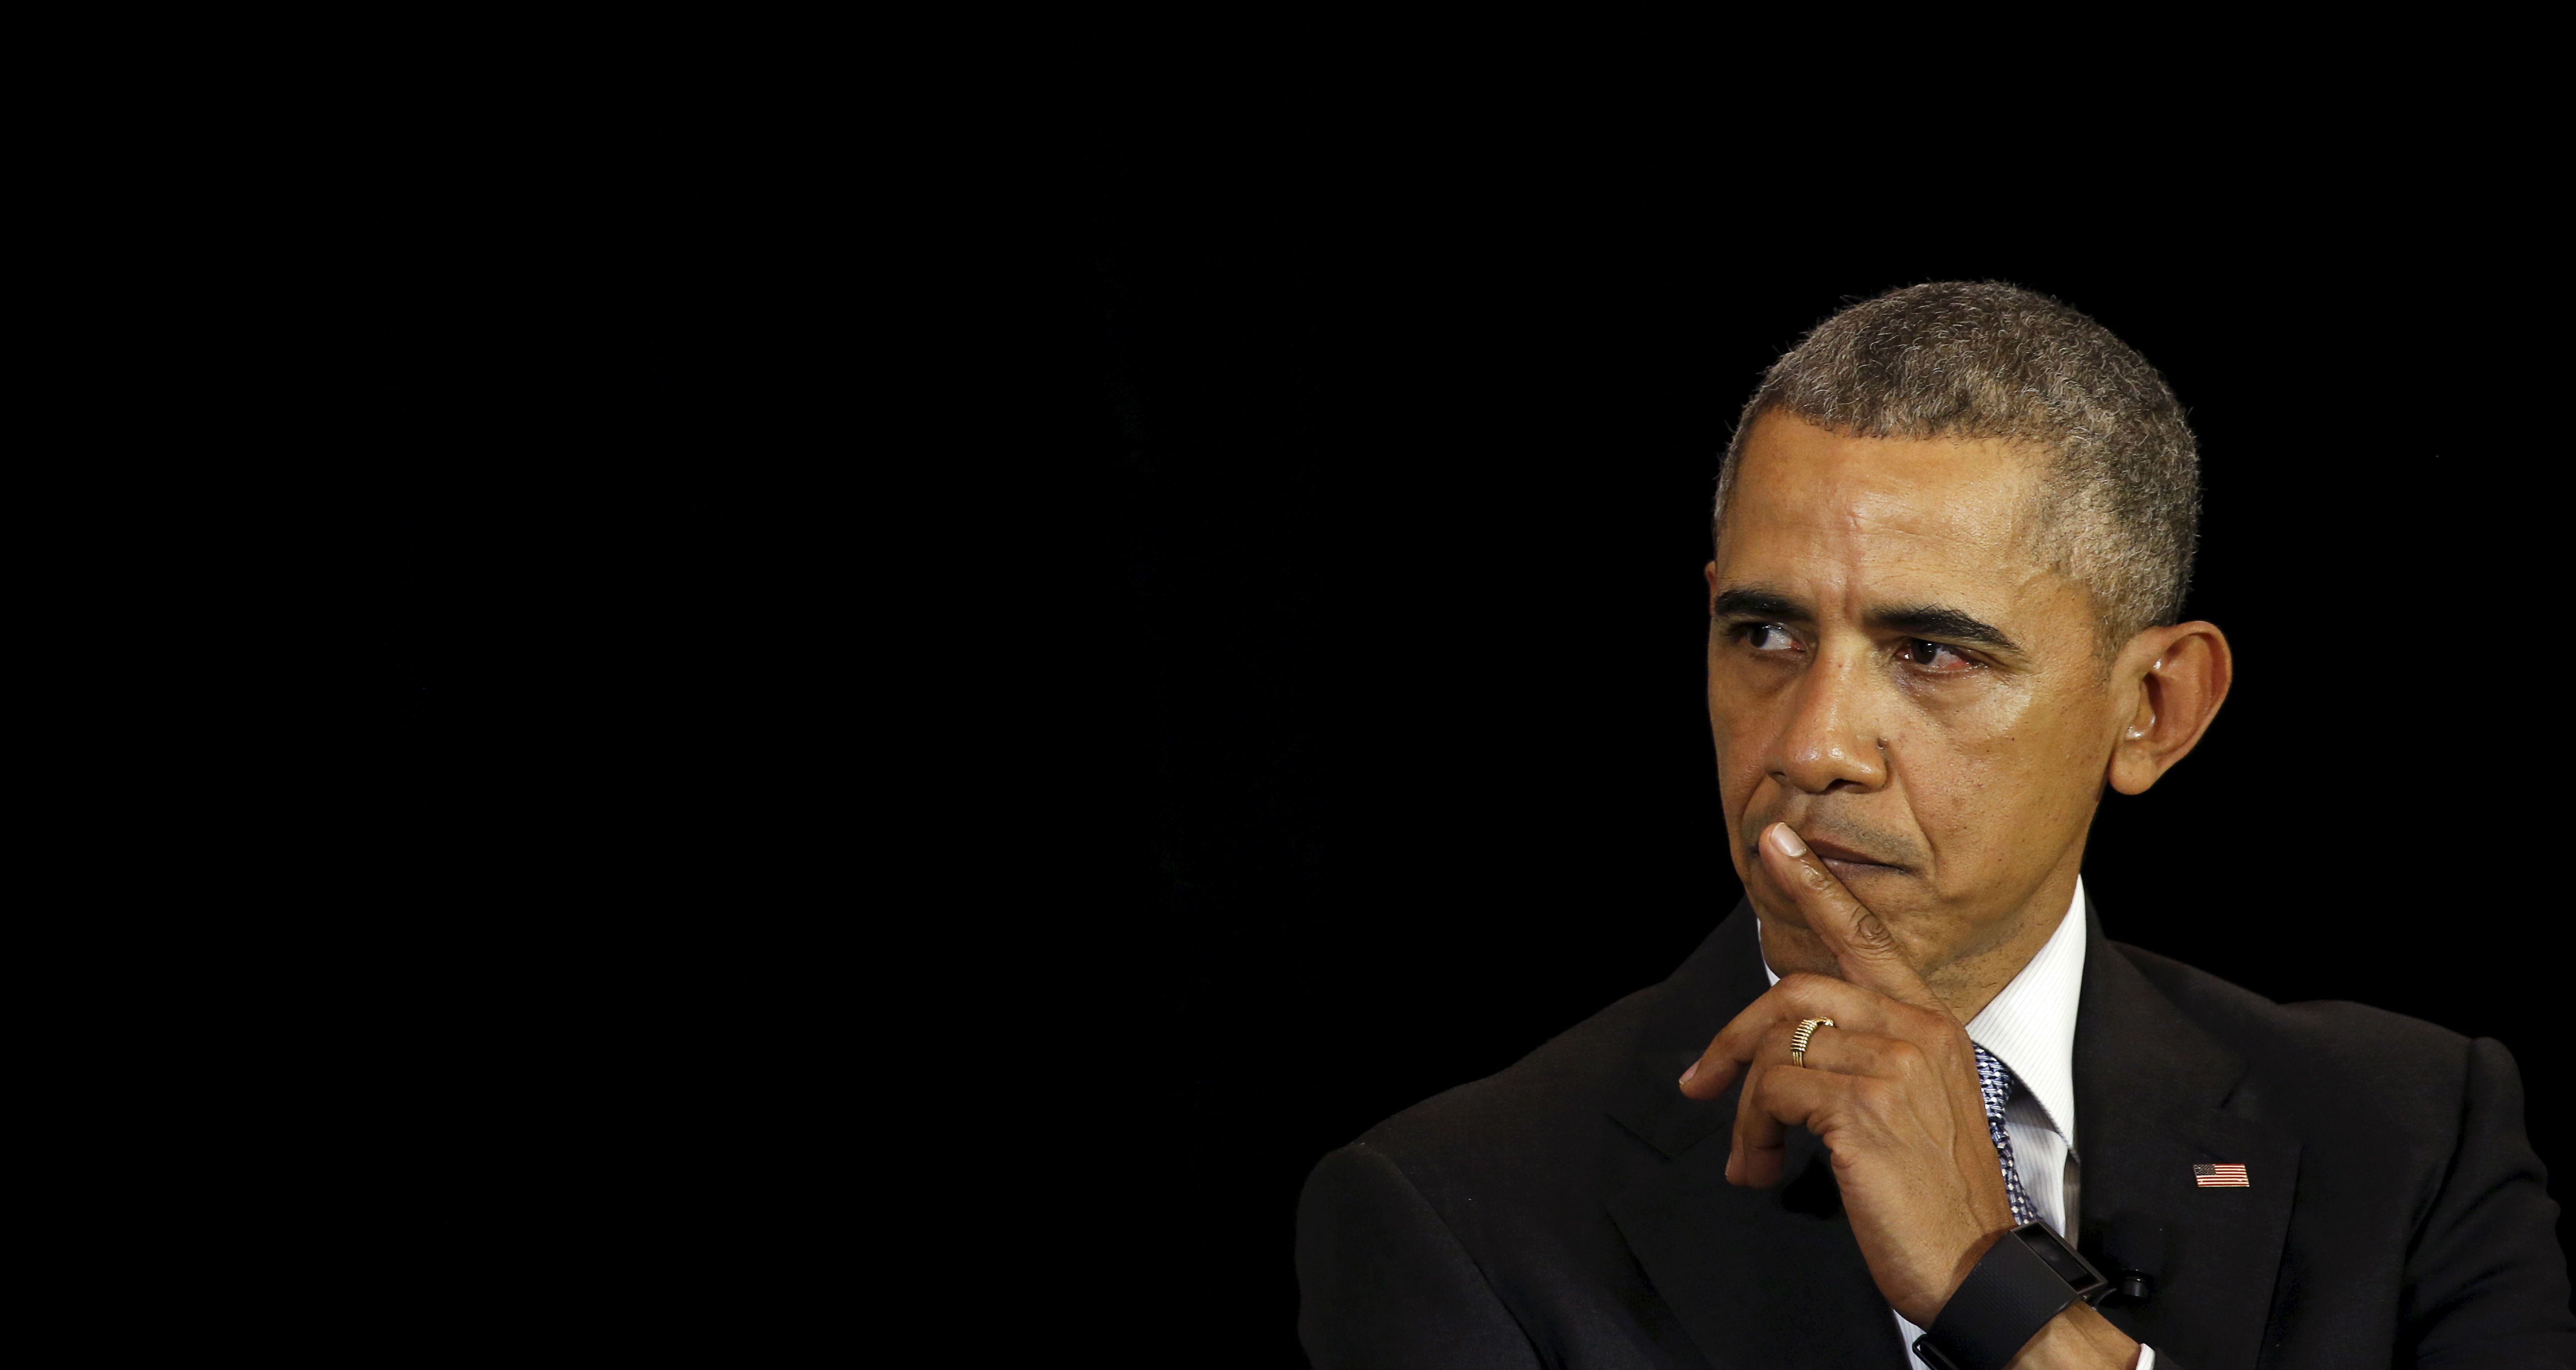 U.S. President Barack Obama pauses while speaking about his Supreme Court nominee to students at the University of Chicago Law School, where Obama taught constitutional law for over a decade, in Chicago April 7, 2016.    REUTERS/Kevin Lamarque